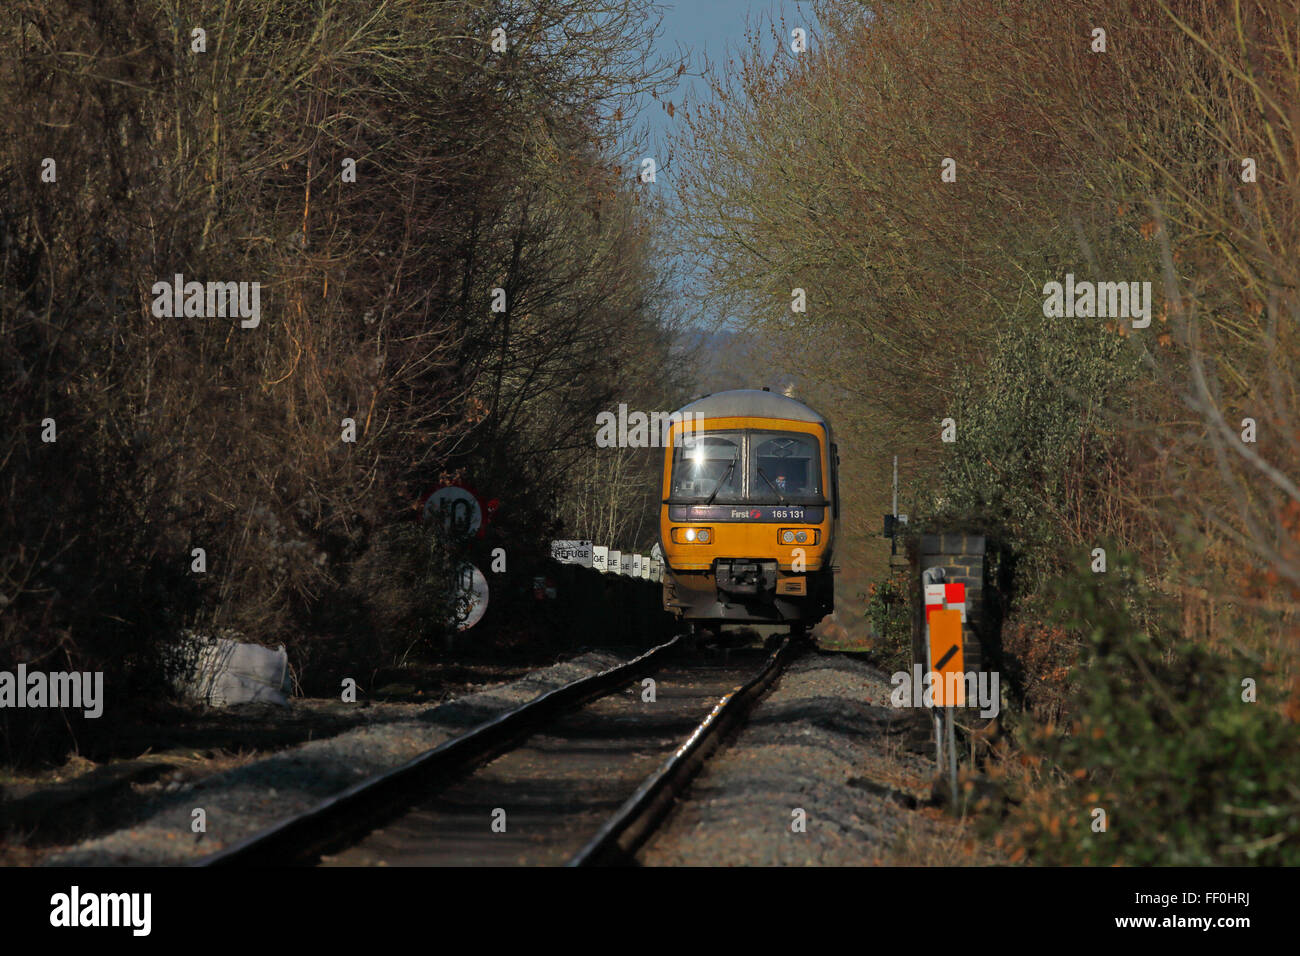 A slowly approaching class 165 Diesel Multiple unit crossing Shiplake Viaduct over the Thames at Shiplake. - Stock Image